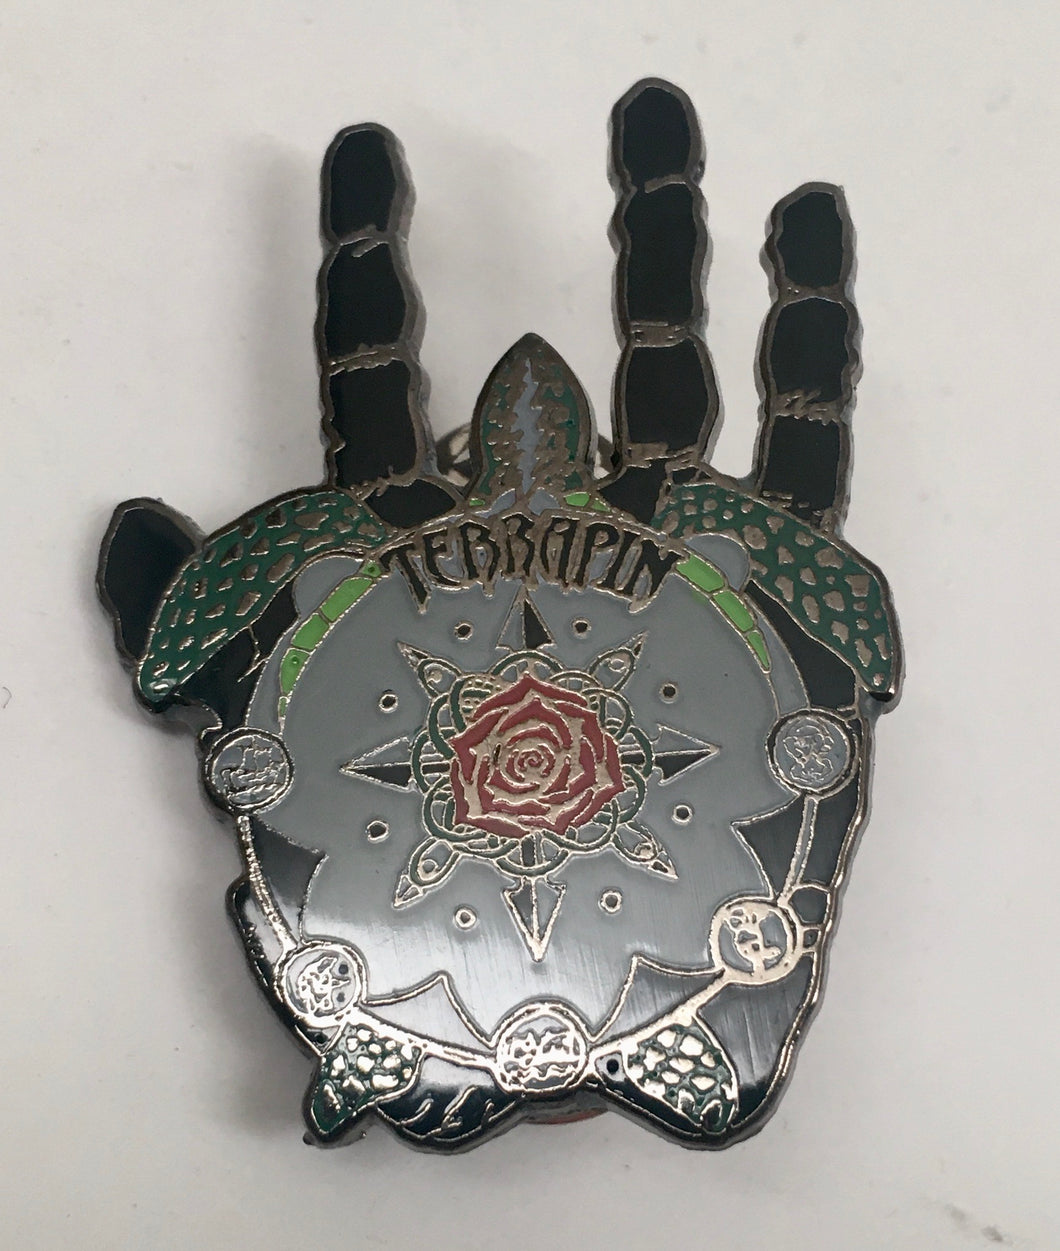 Terrapin Jerry Hand Pin (Vintage 2013)